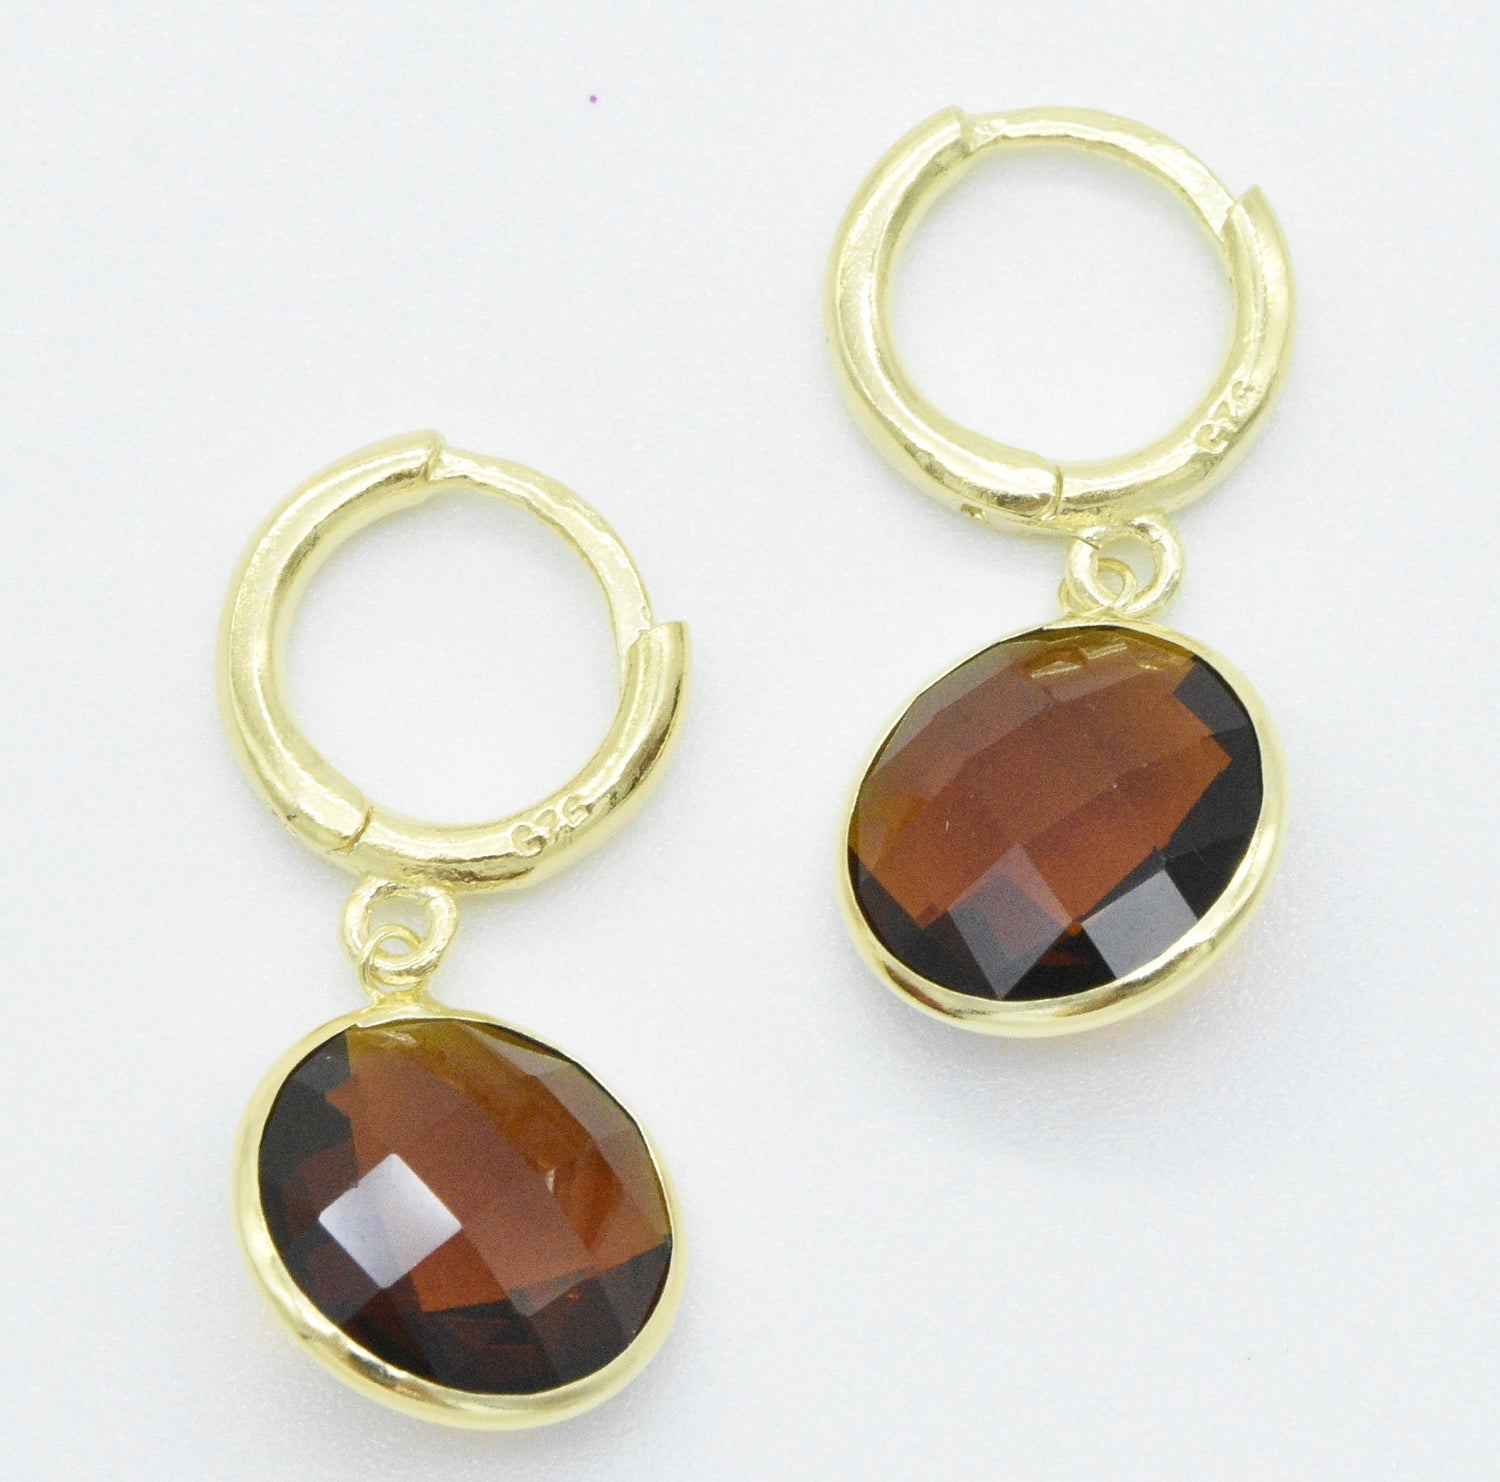 Aylas 21ct gold plated 925 silver Smoky Quartz handmade ottoman style earrings - Ottoman Handmade Jewellery Hand Made Gold Plated